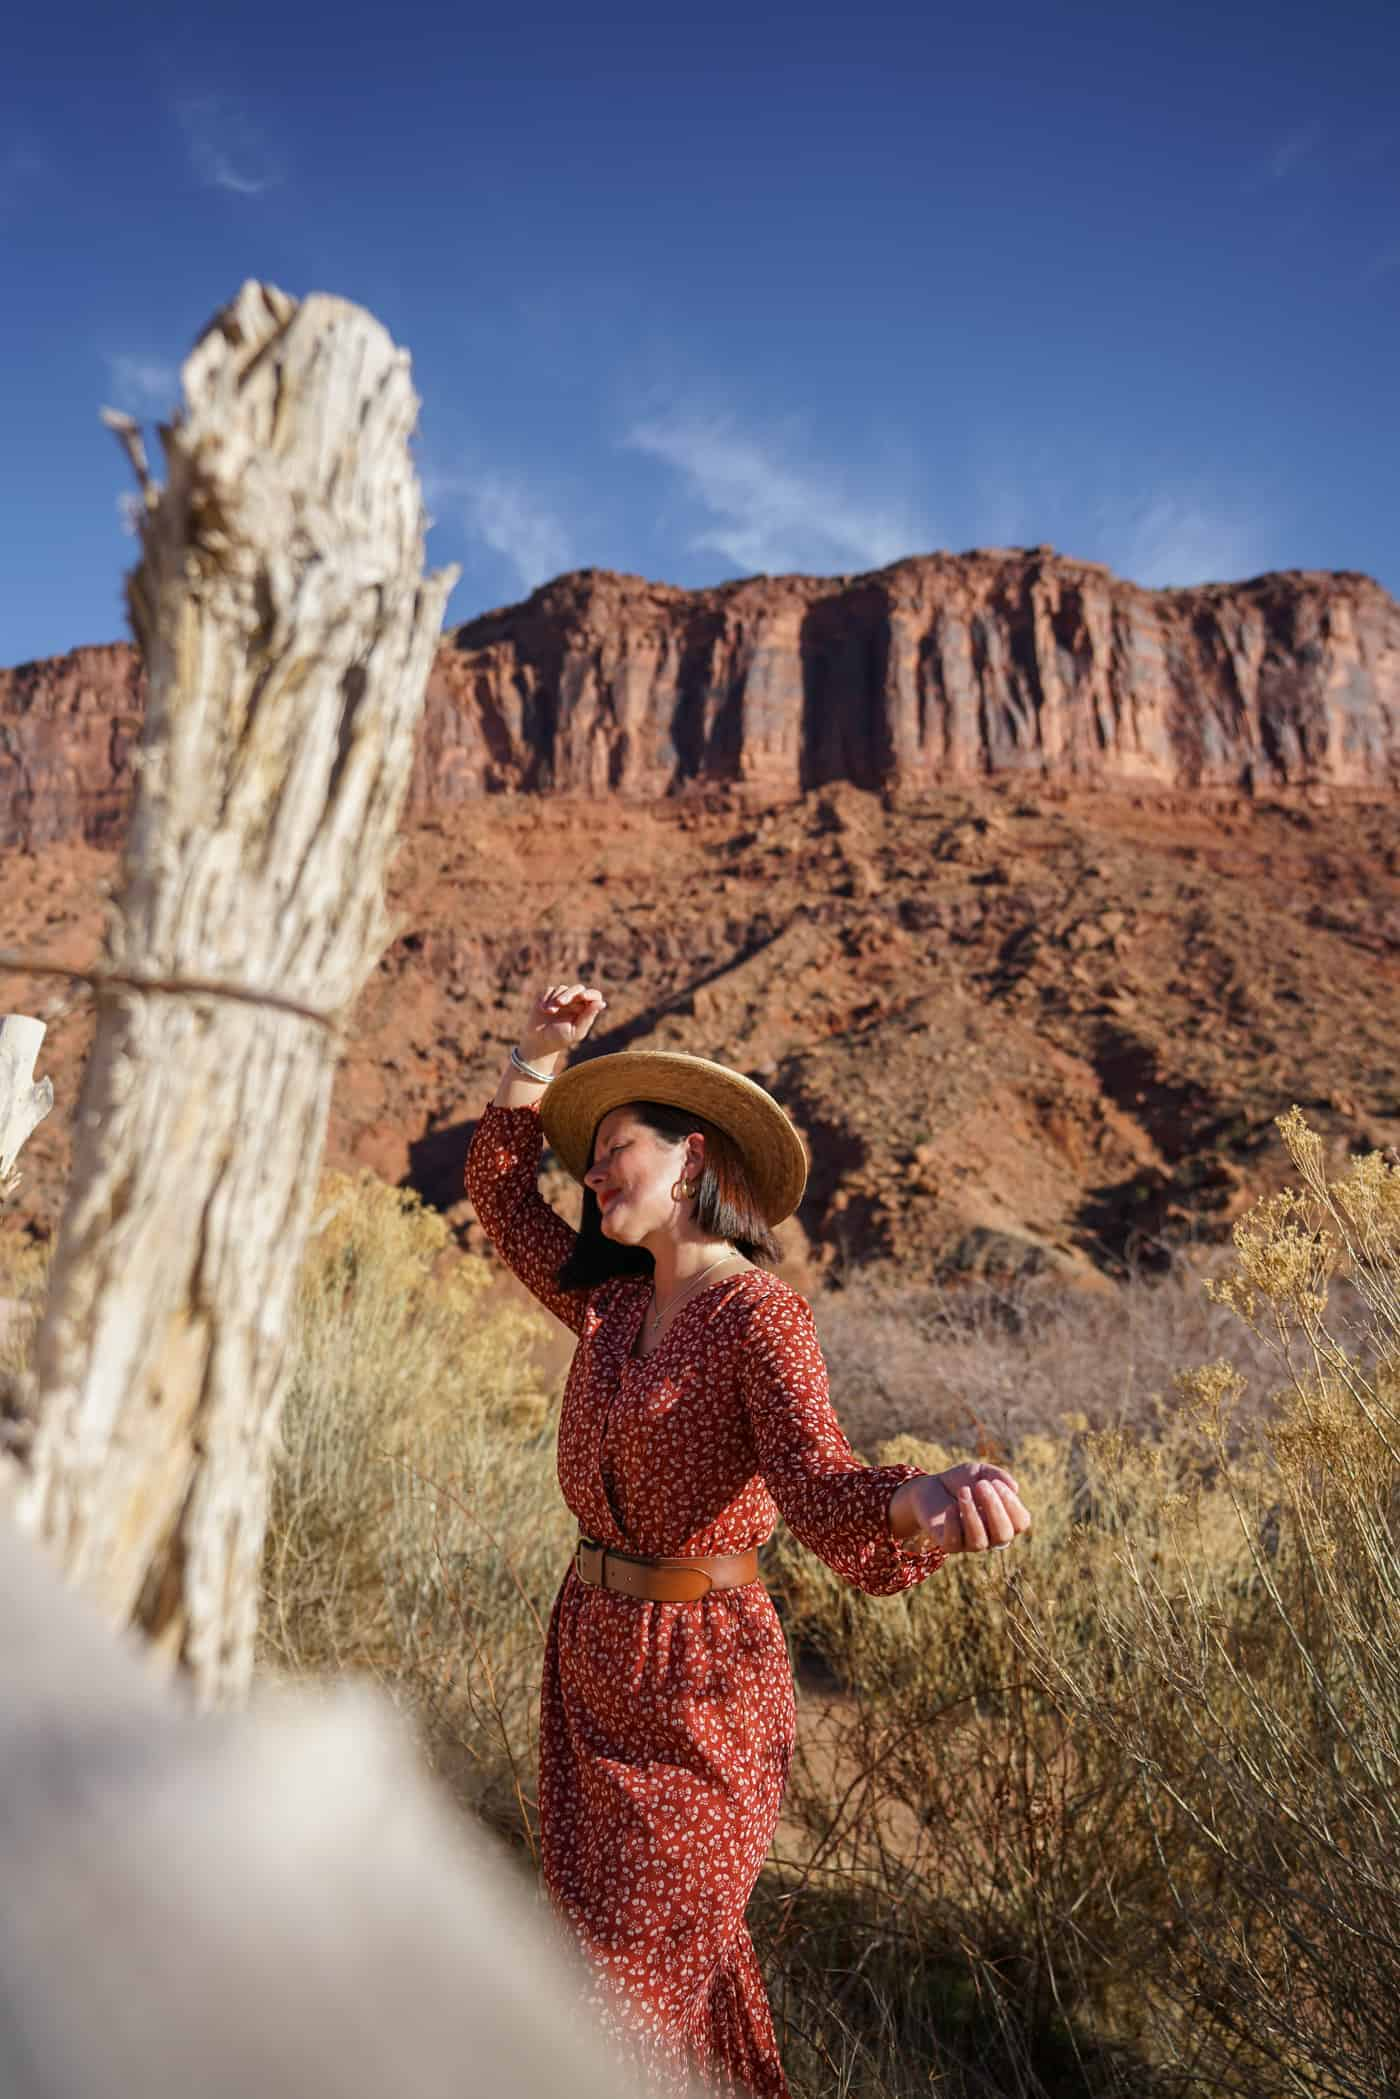 A women wearing a dress and a straw hat in the hills of Moab Utah.